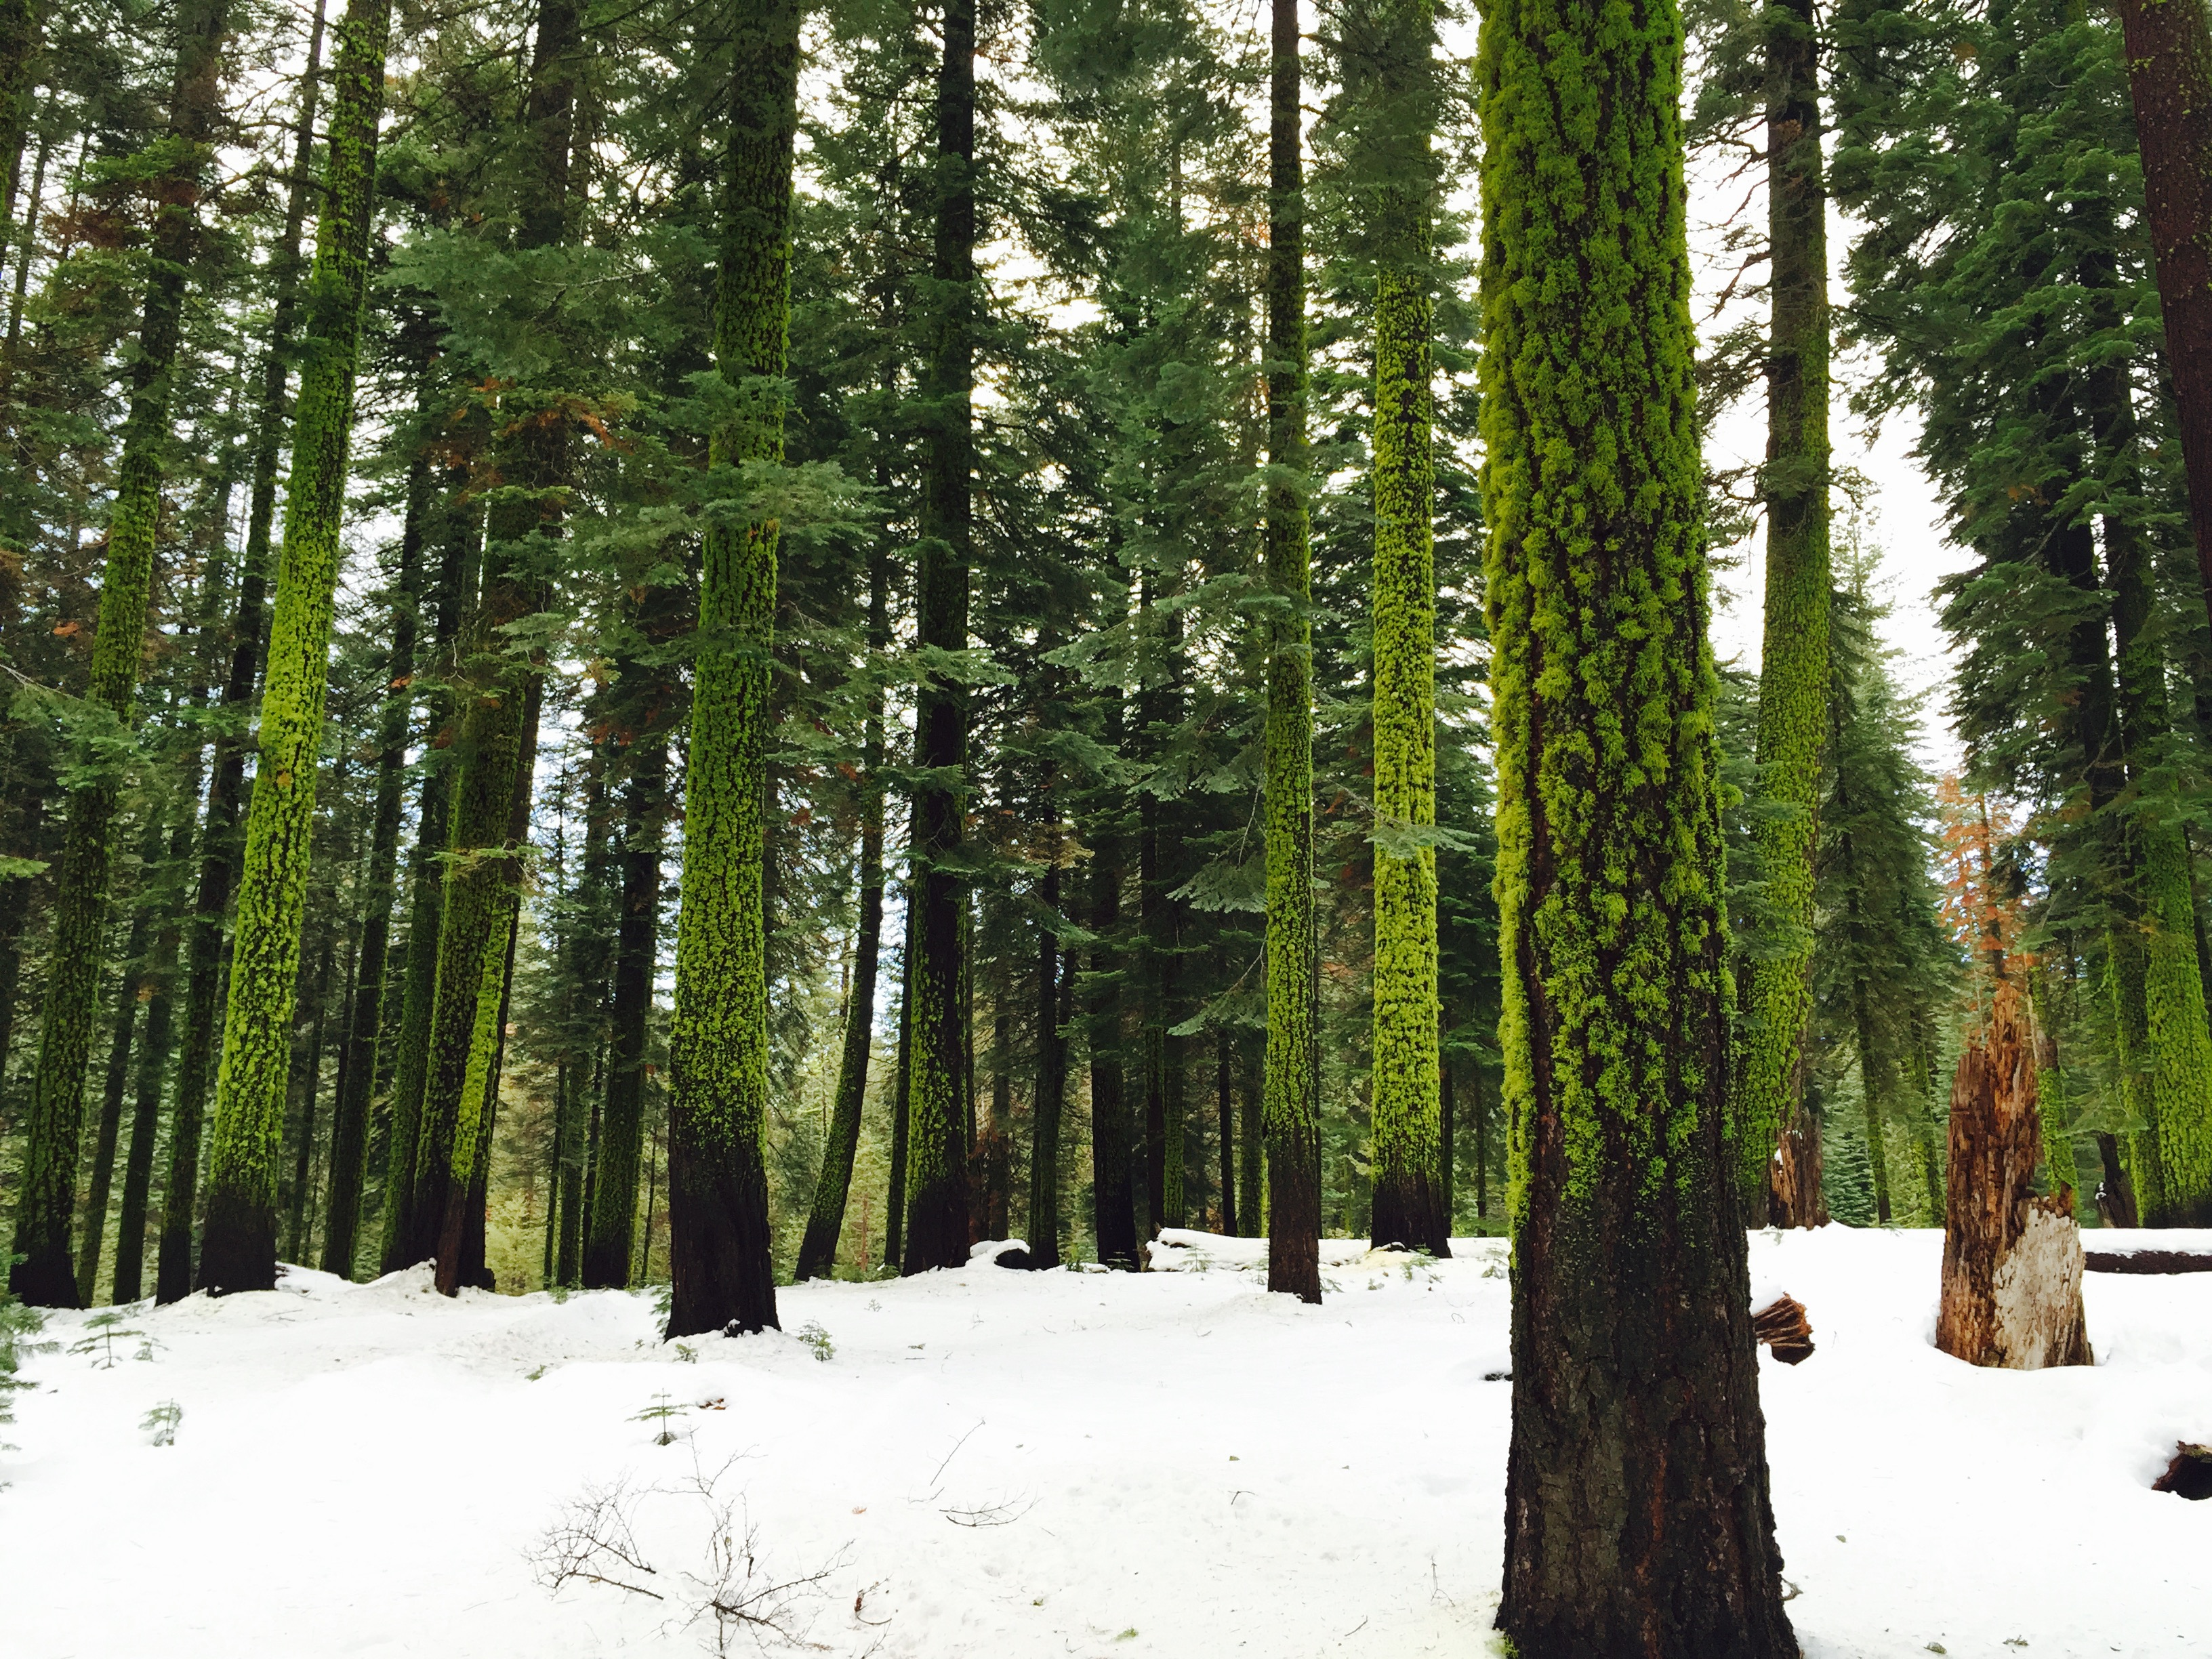 This is how the valley's forests looked to us this week, as we visited around Winter Solstice.